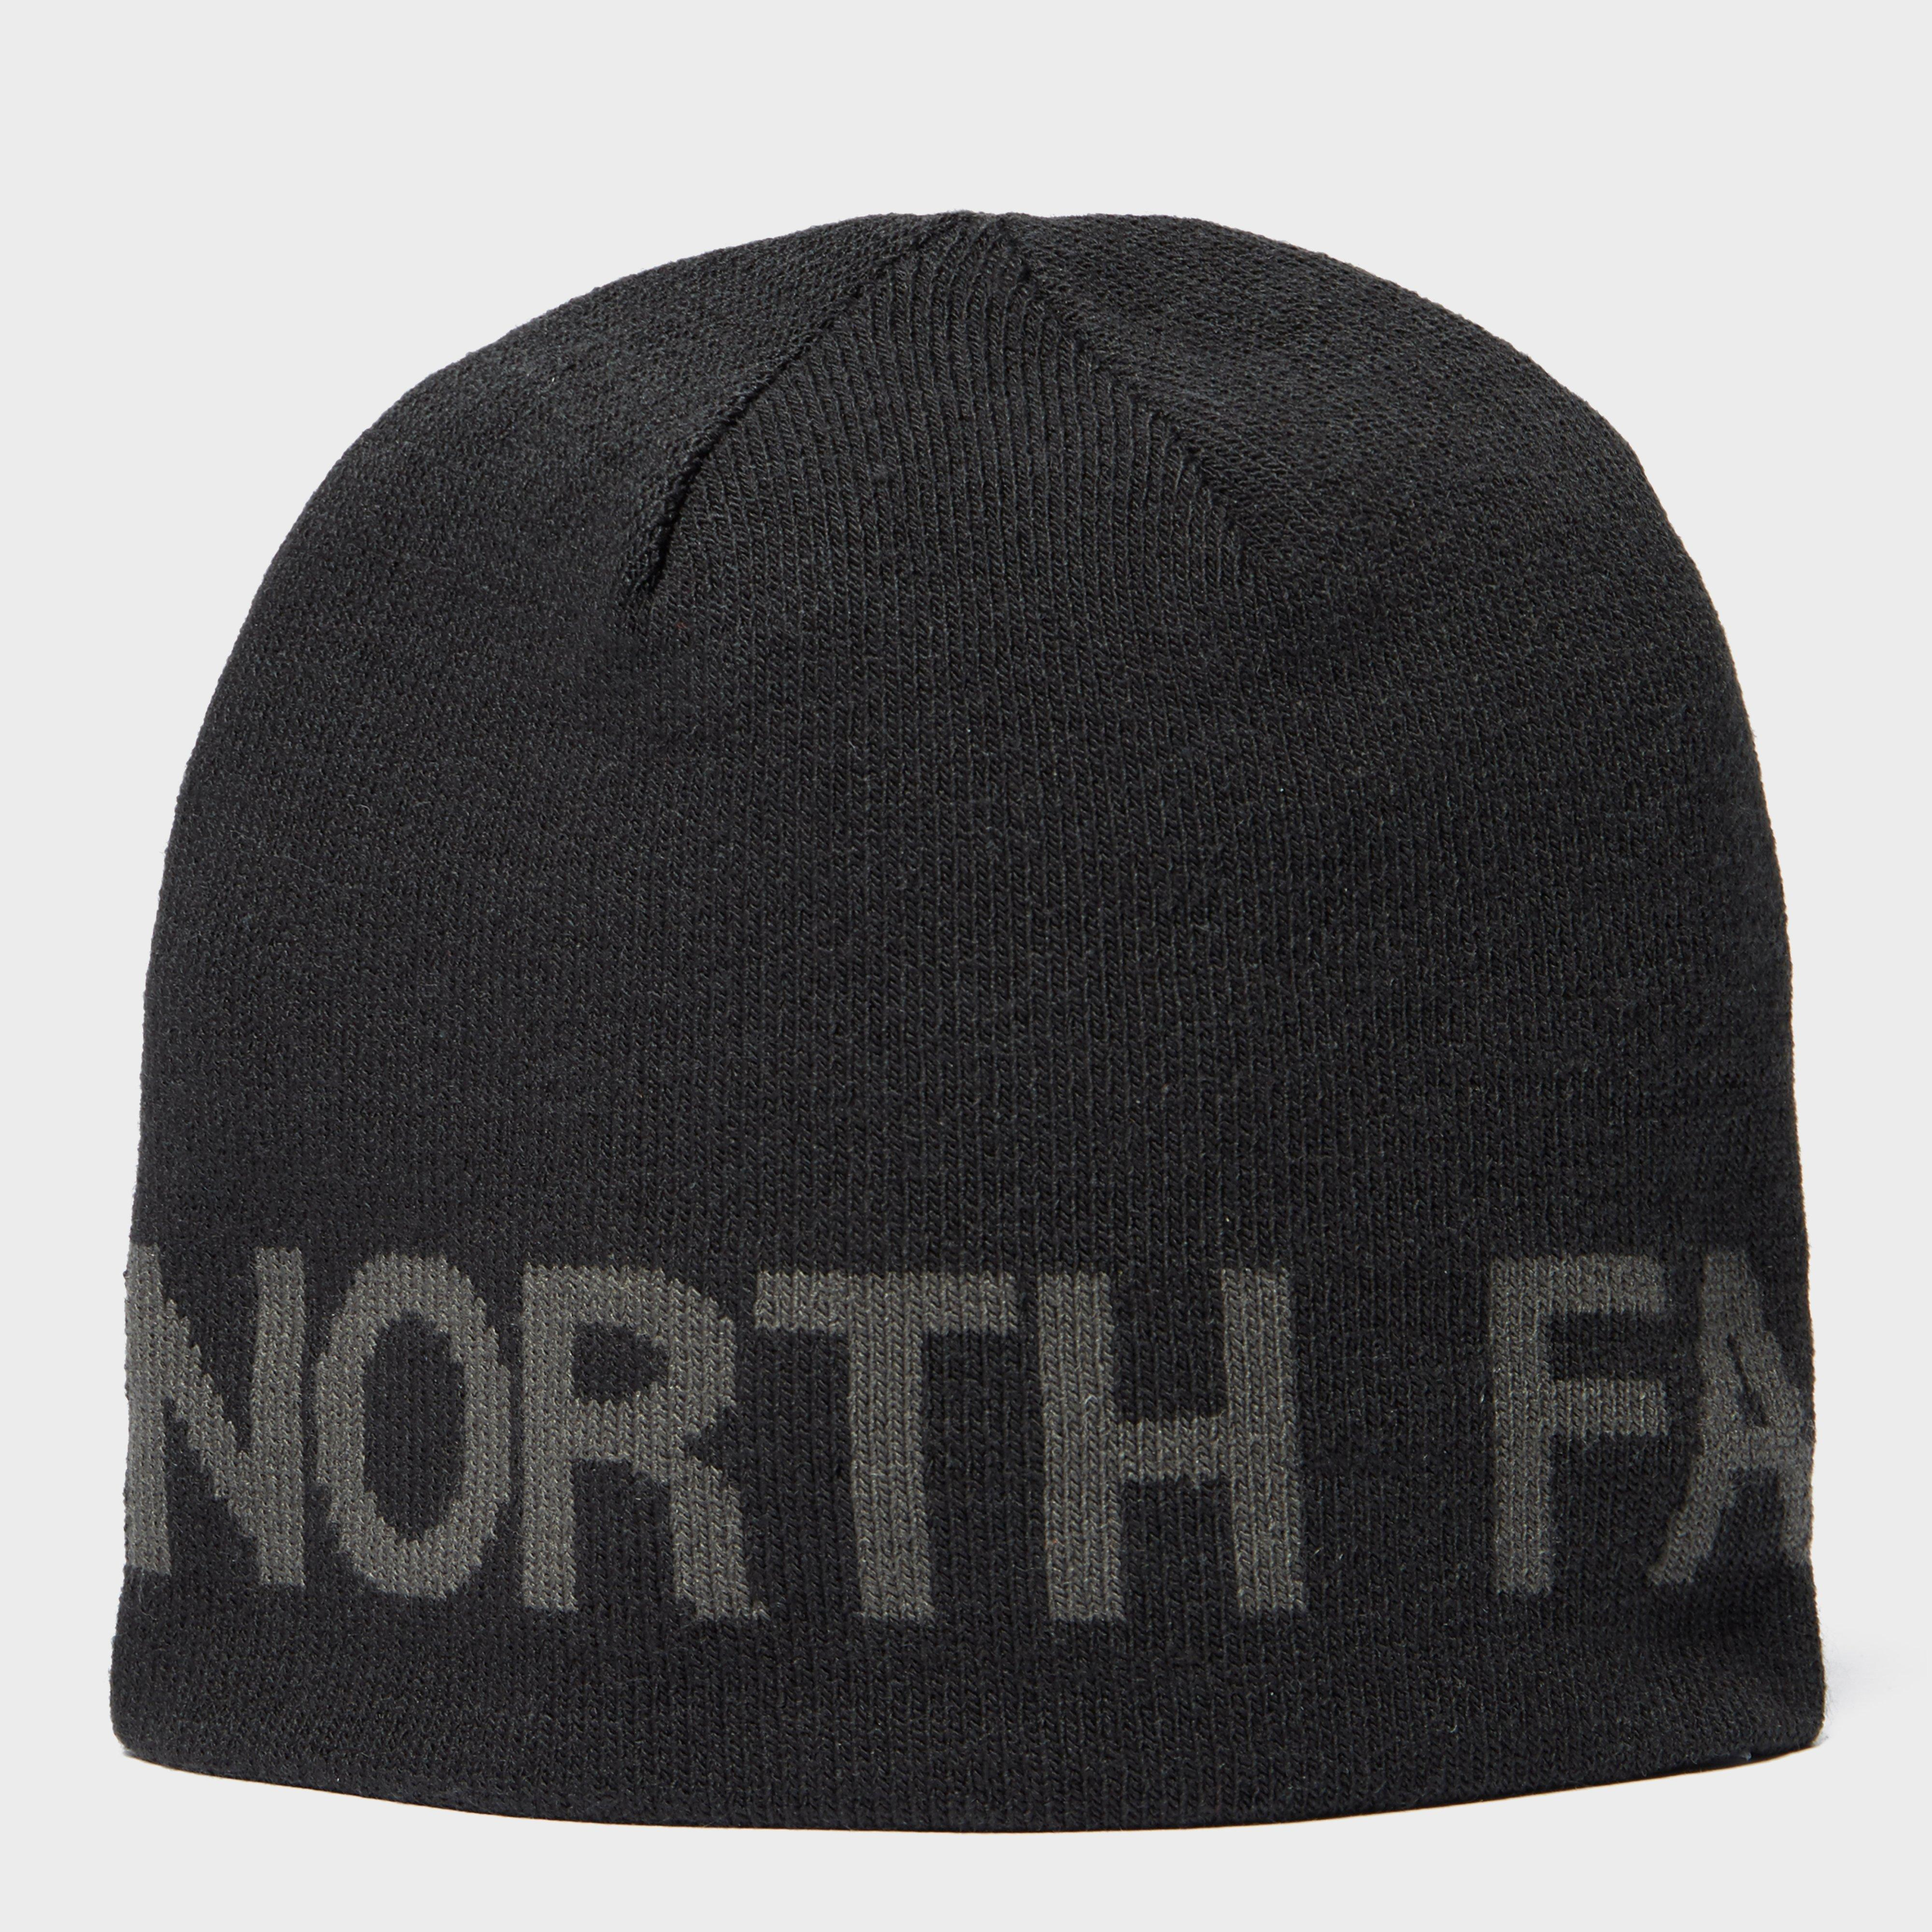 f0a2f535041 Black THE NORTH FACE Men s Reversible Knitted Beanie image 1